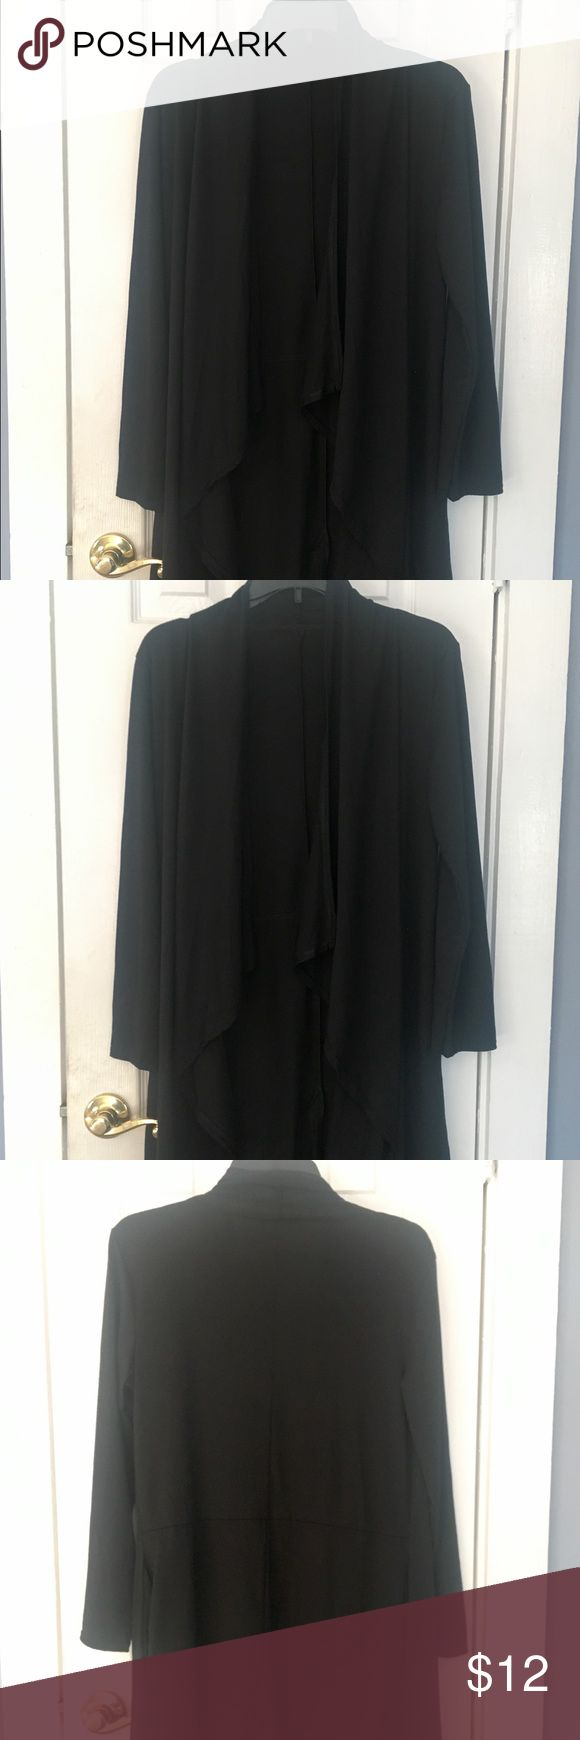 Black Cardigan/long open top-S-New New/never worn black long cardigan top with ruched front. The top hangs to knees and had no label. I purchased it off Groupon for $33 but it is too big on me as I am an XS. Please message me for more information or pictures. This has never been worn. Looks great with jeans or leggings. I gladly bundle items for shipping so please check out my other great items. Thank you for looking. Tops